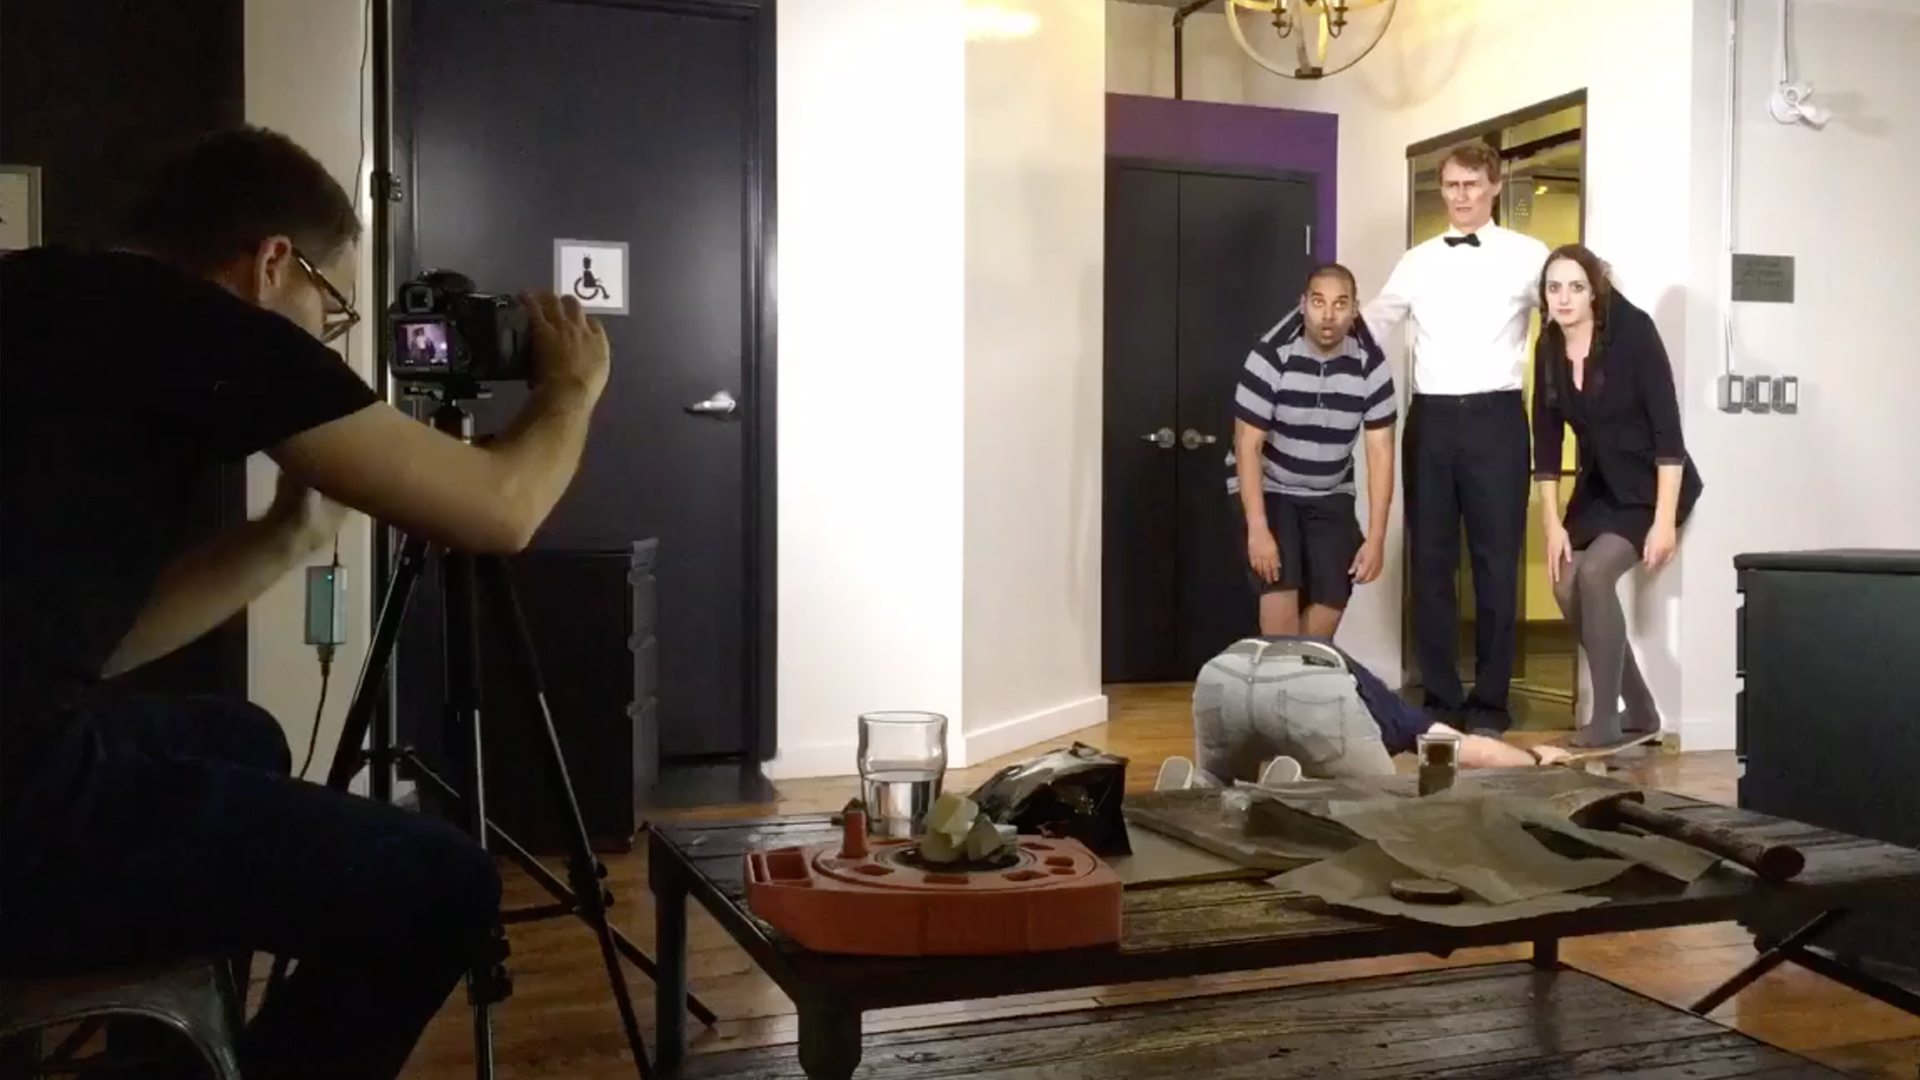 Video Production Tips: How We Created Our Halloween Video